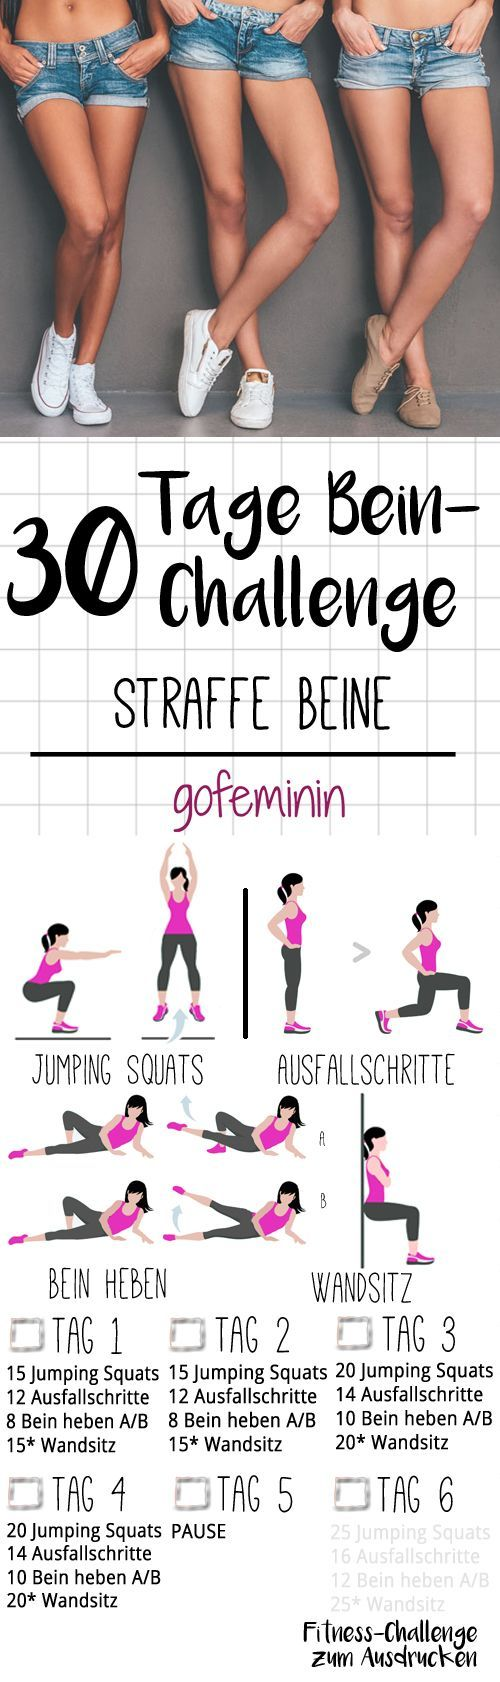 For beautiful, firm legs: the 30-day leg challenge! -  The whole challenge can be printed out on gofeminin.de. Start now with the shorts training for the  - #30day #beautiful #challenge #EasyFitness #FemaleFitness #firm #fitness #fitnessdiet #FitnessModels #FitnessMotivation #leg #legs